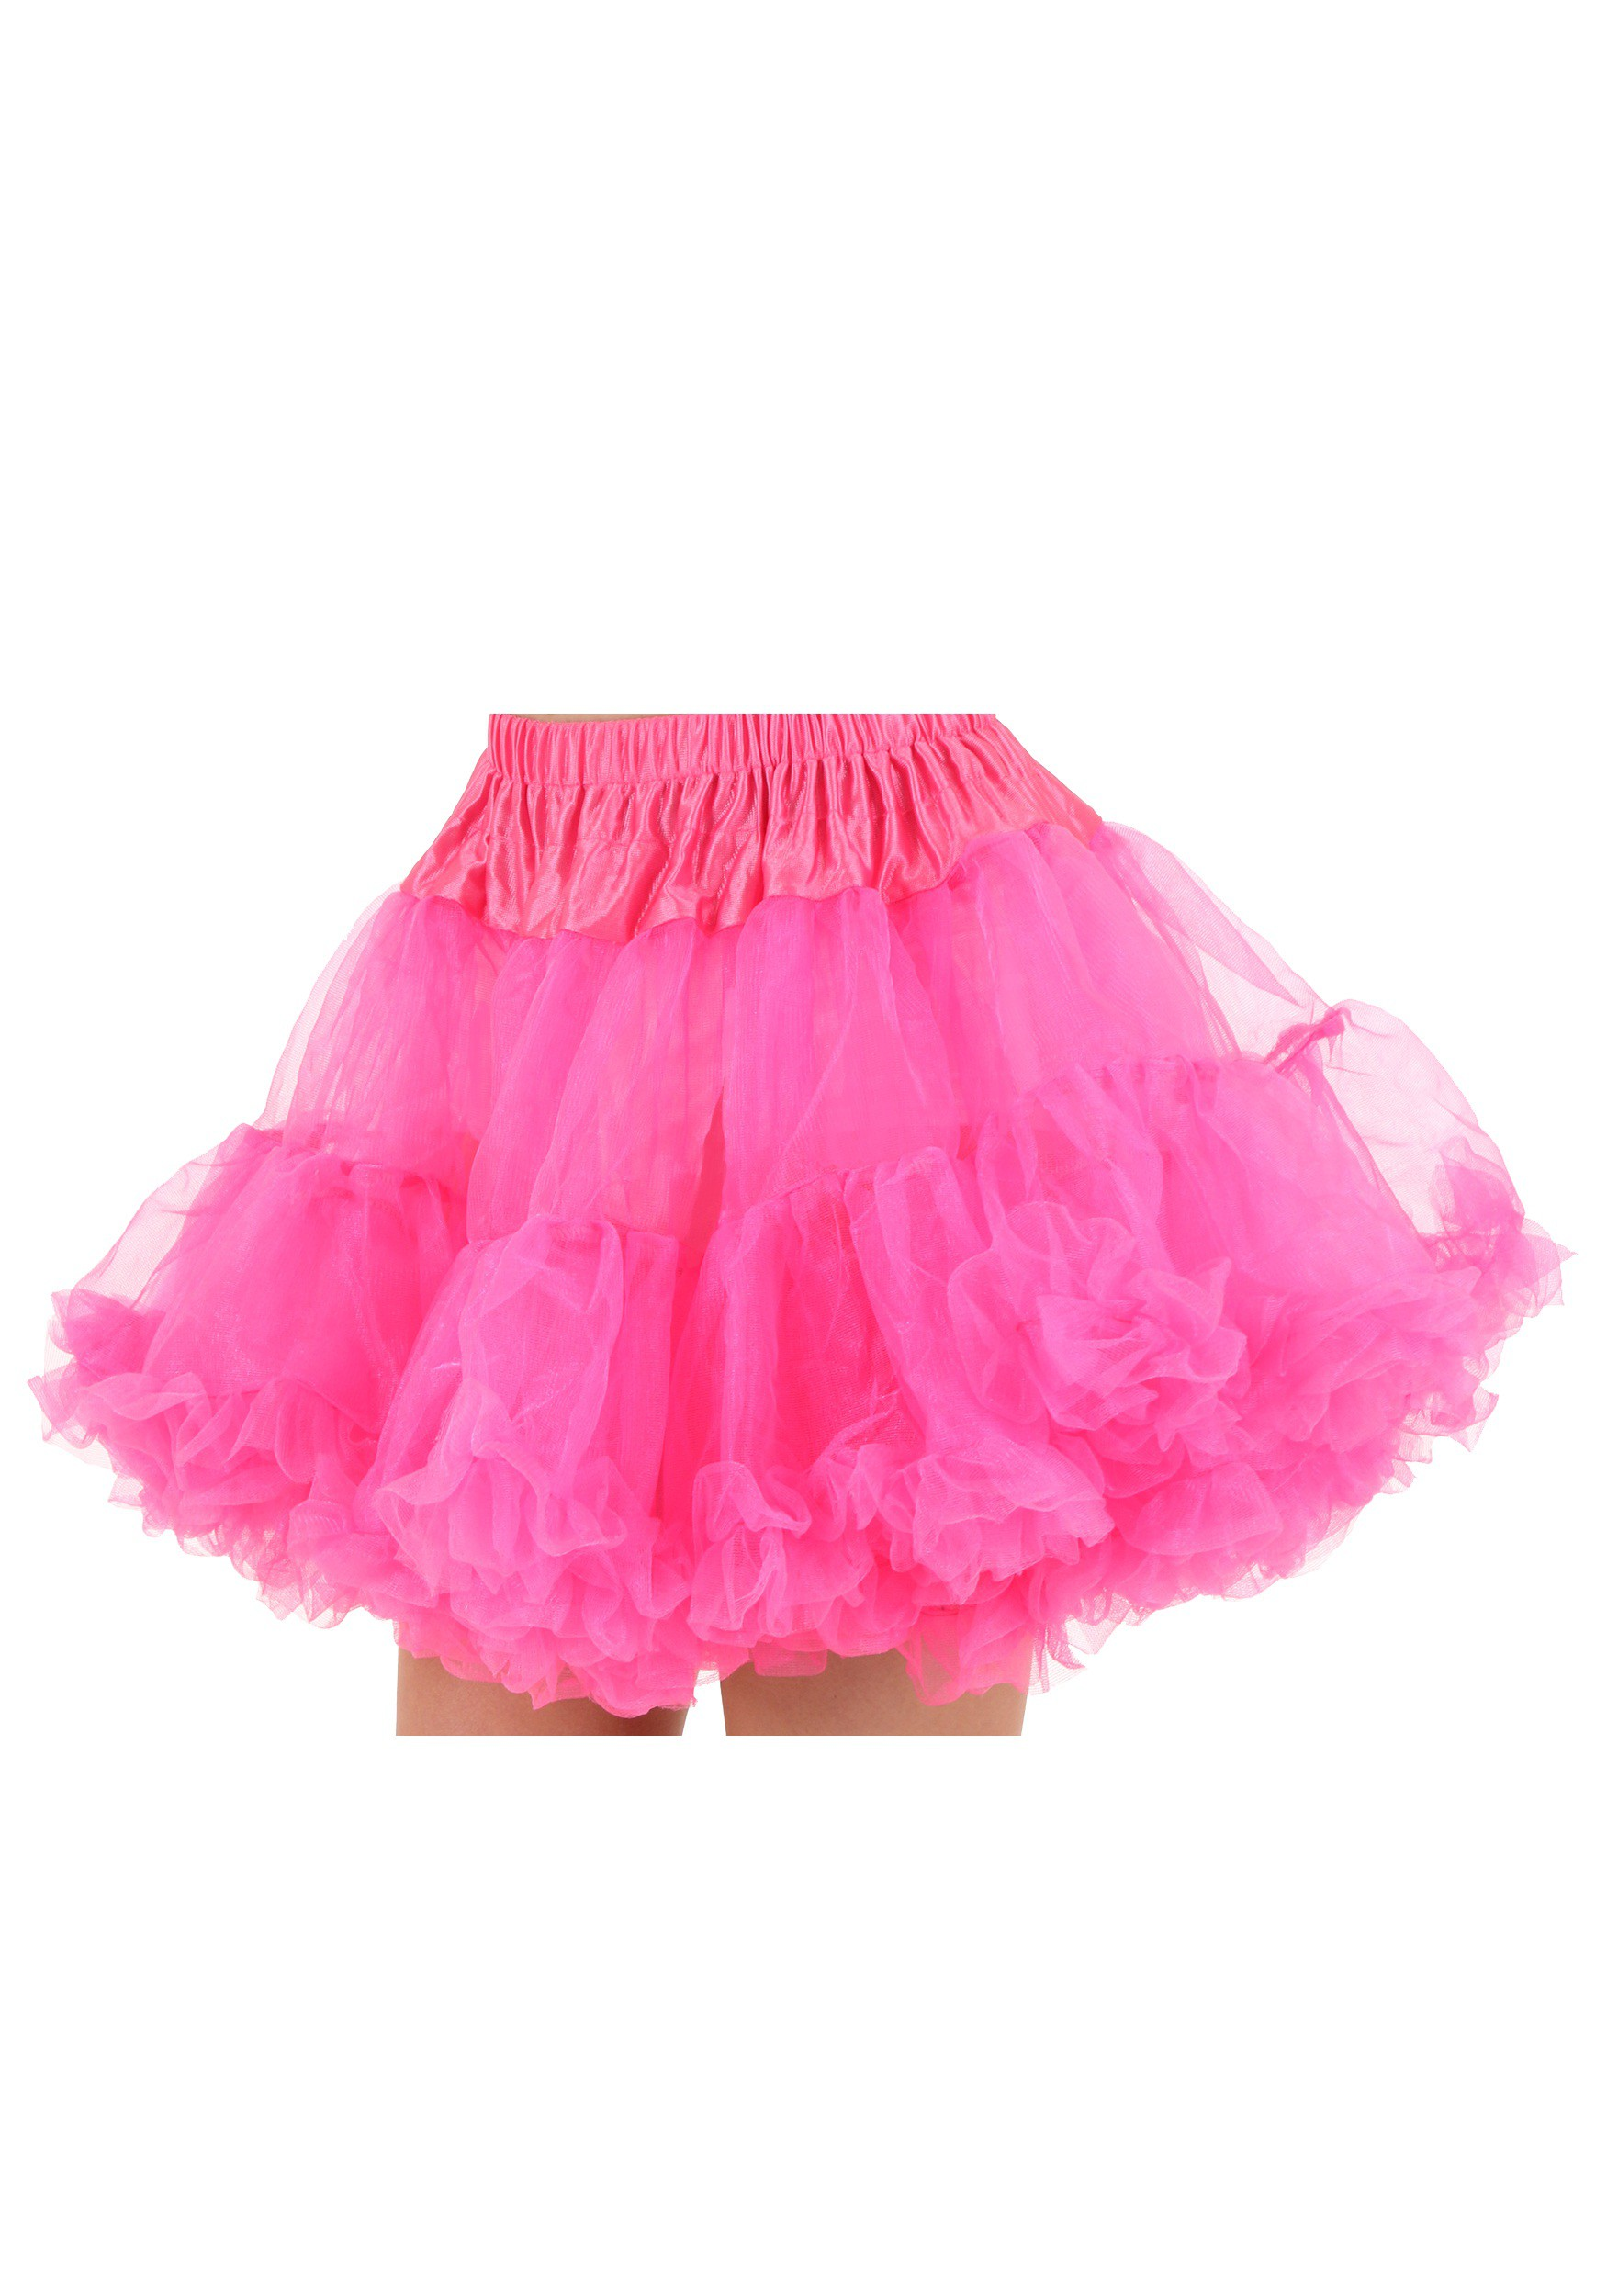 Wedding Plus Size Petticoat plus size hot pink petticoat neon petticoat